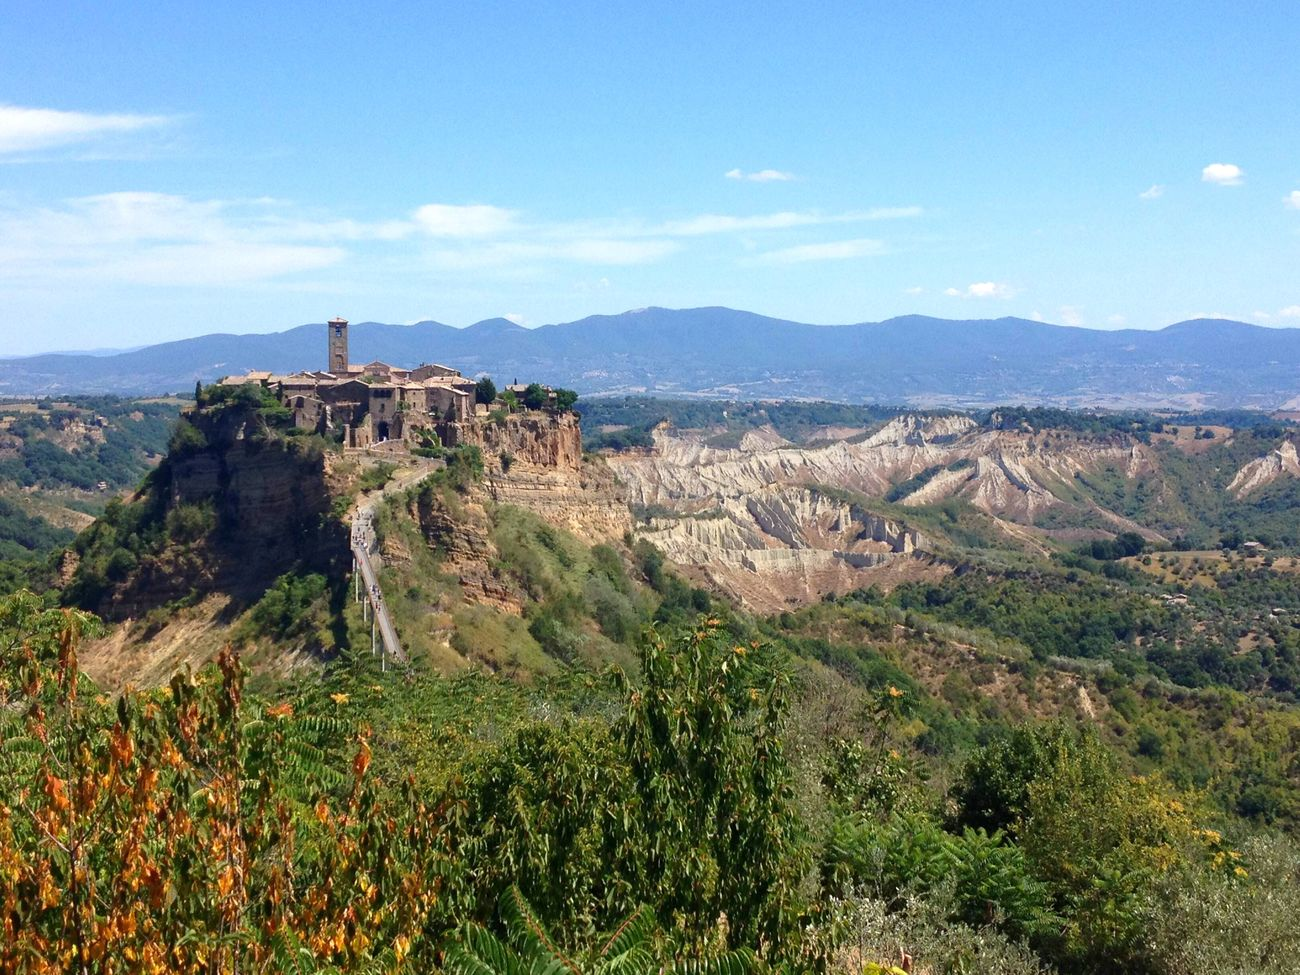 Civita Di Bagnoregio Architecture Mountain Range Built Structure Sky Landscape Cloud Beauty In Nature Italy Italia La città che muore